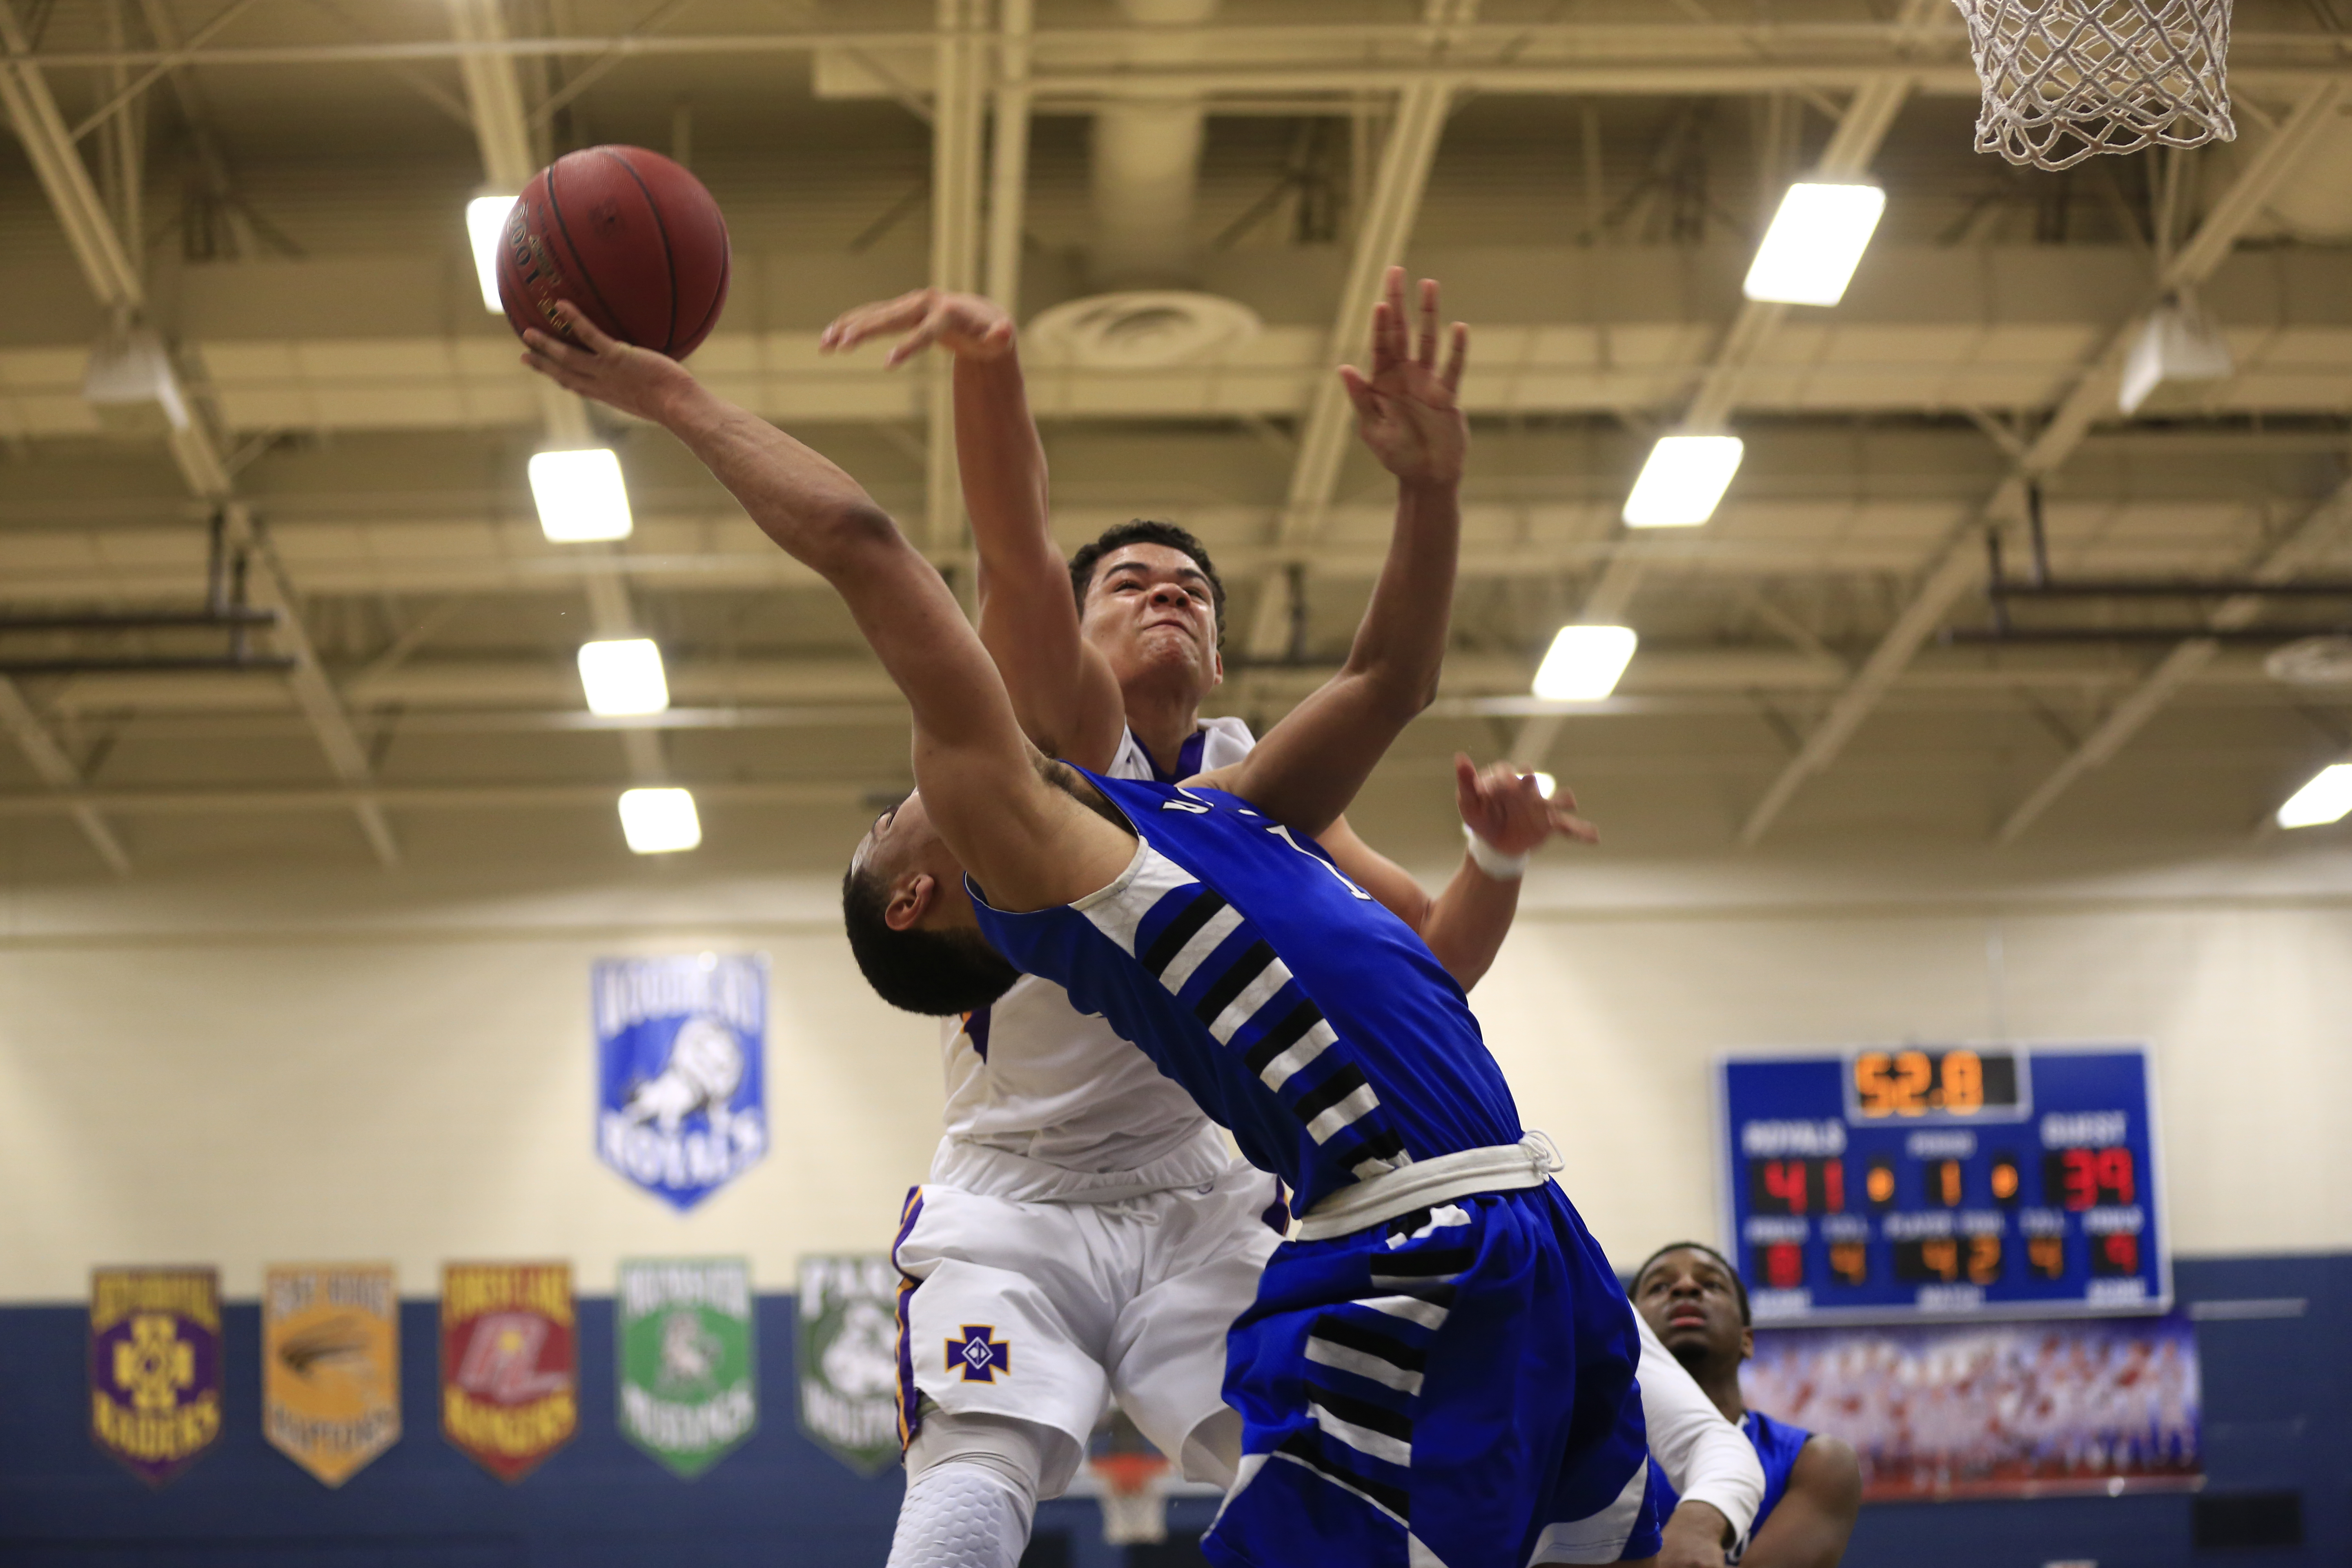 The Royals Jeremiah Coddon (1) attempts to score a basket under the arms of Jake Prince (21) of Cretin-Durham Hall. Jeremiah of the Royals scored 27 points helping his team clinch the victory at home, 85-78. Photo by Chris Juhn